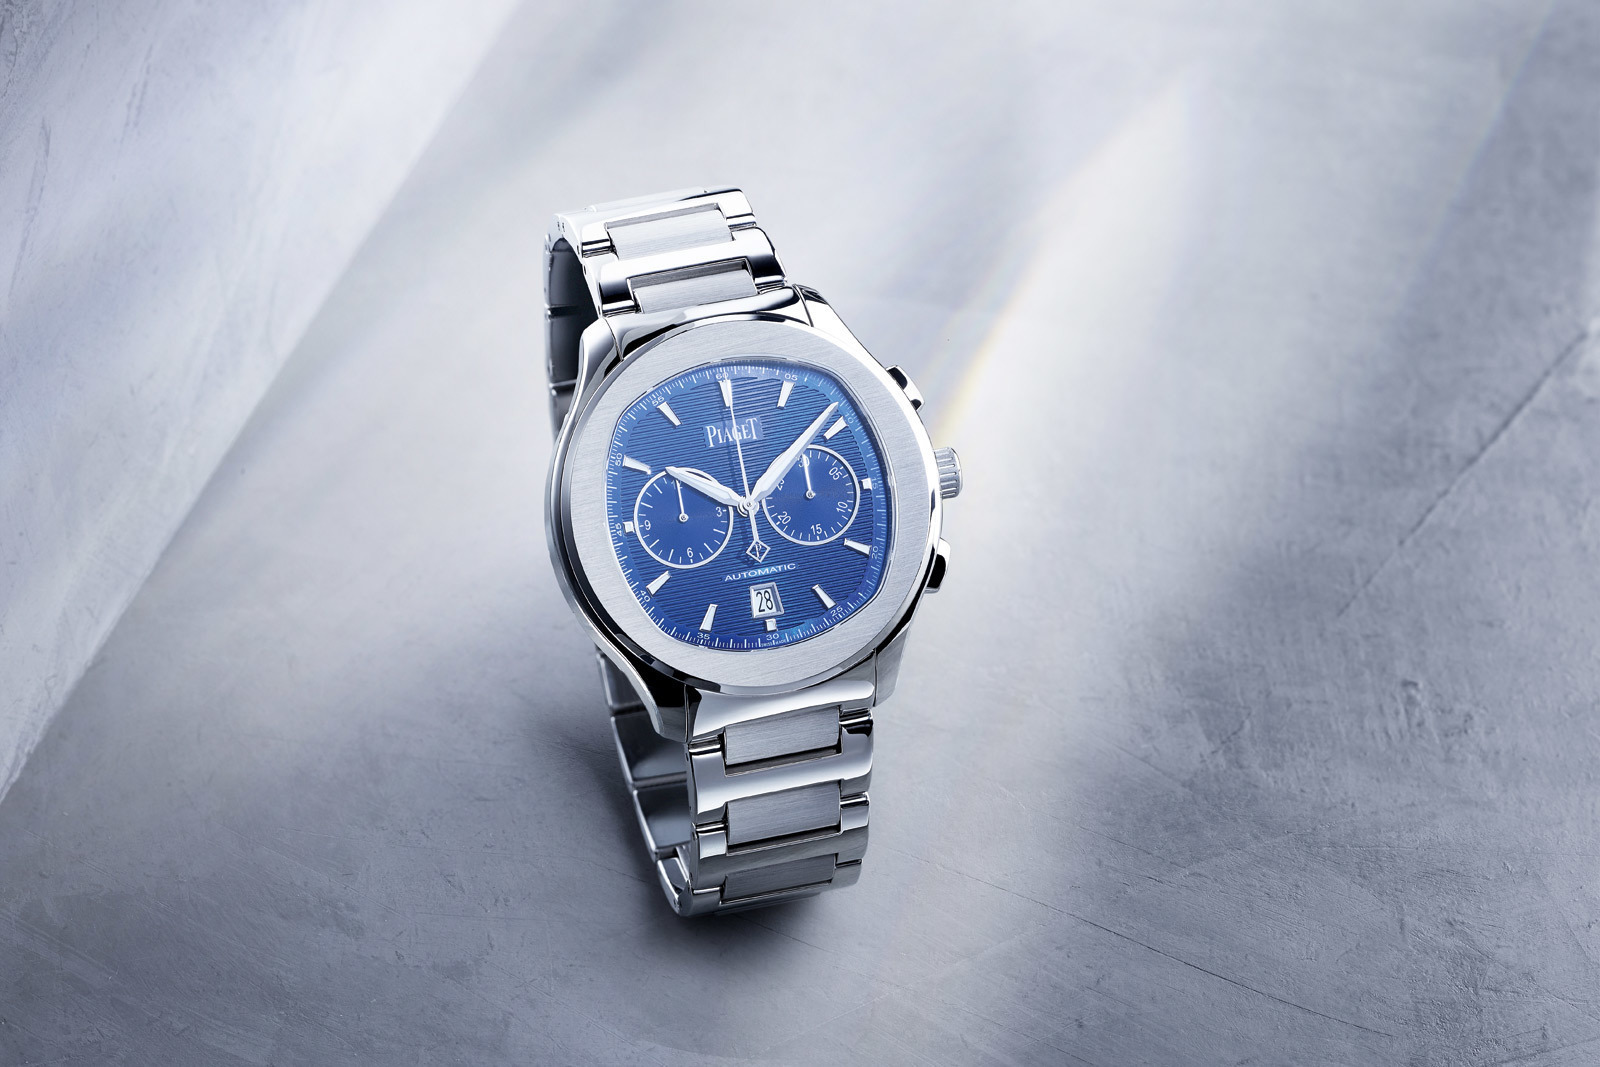 The Piaget Polo S, a stylish and beautiful timepiece by the French maison, comes in a 42mm steel case,